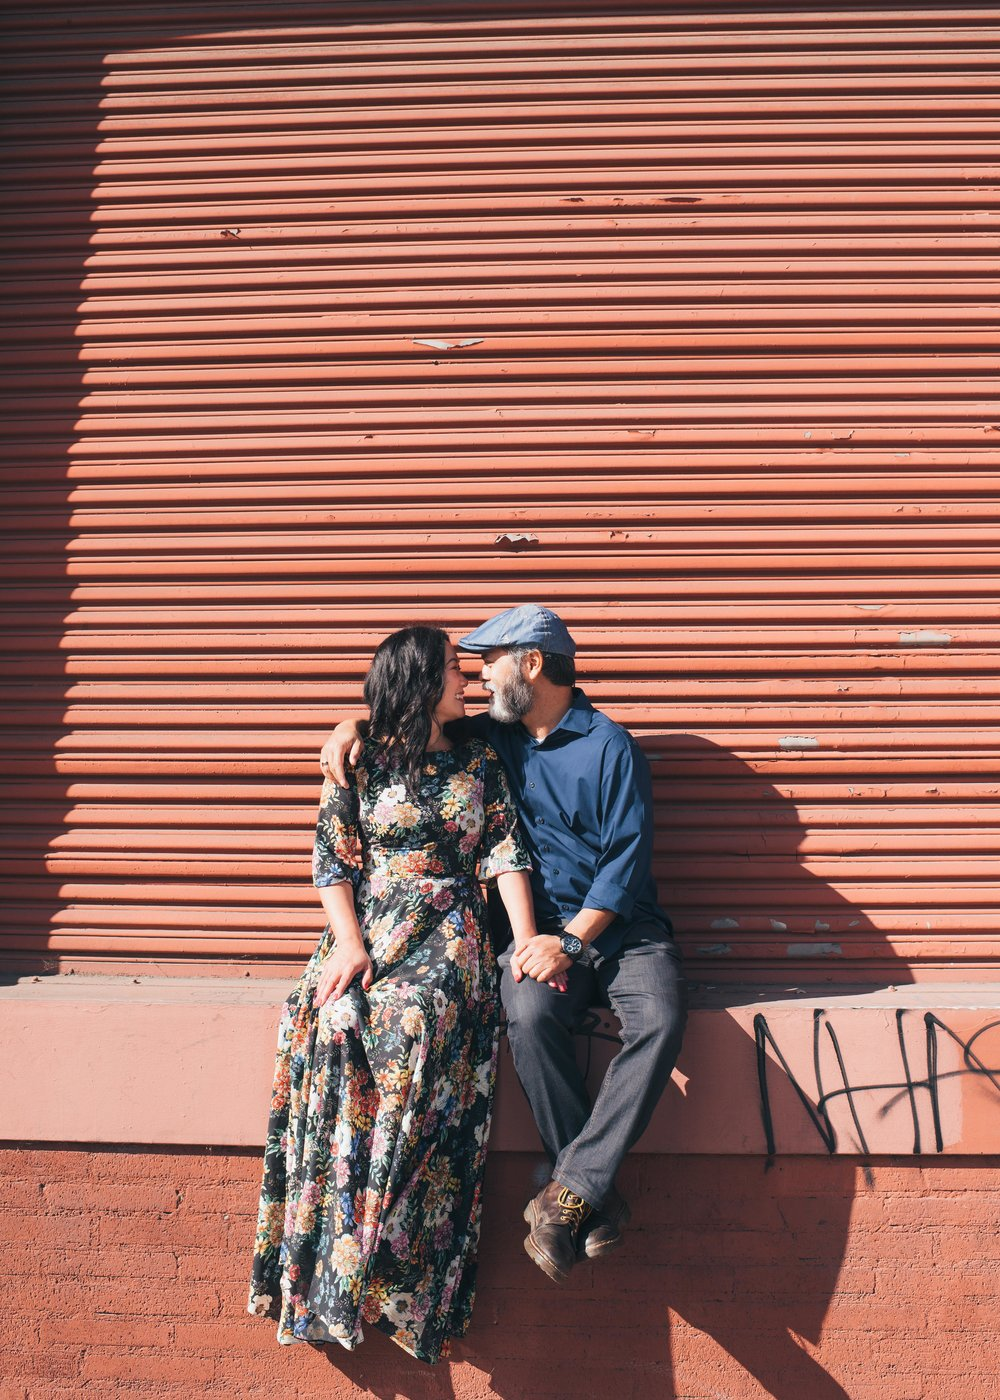 Los Angeles Elopement Photographer, Los Angeles Engagement Photographer, Los Angeles Wedding Photographer, Palm Springs Wedding Photographer, Joshua Tree Wedding Photographer